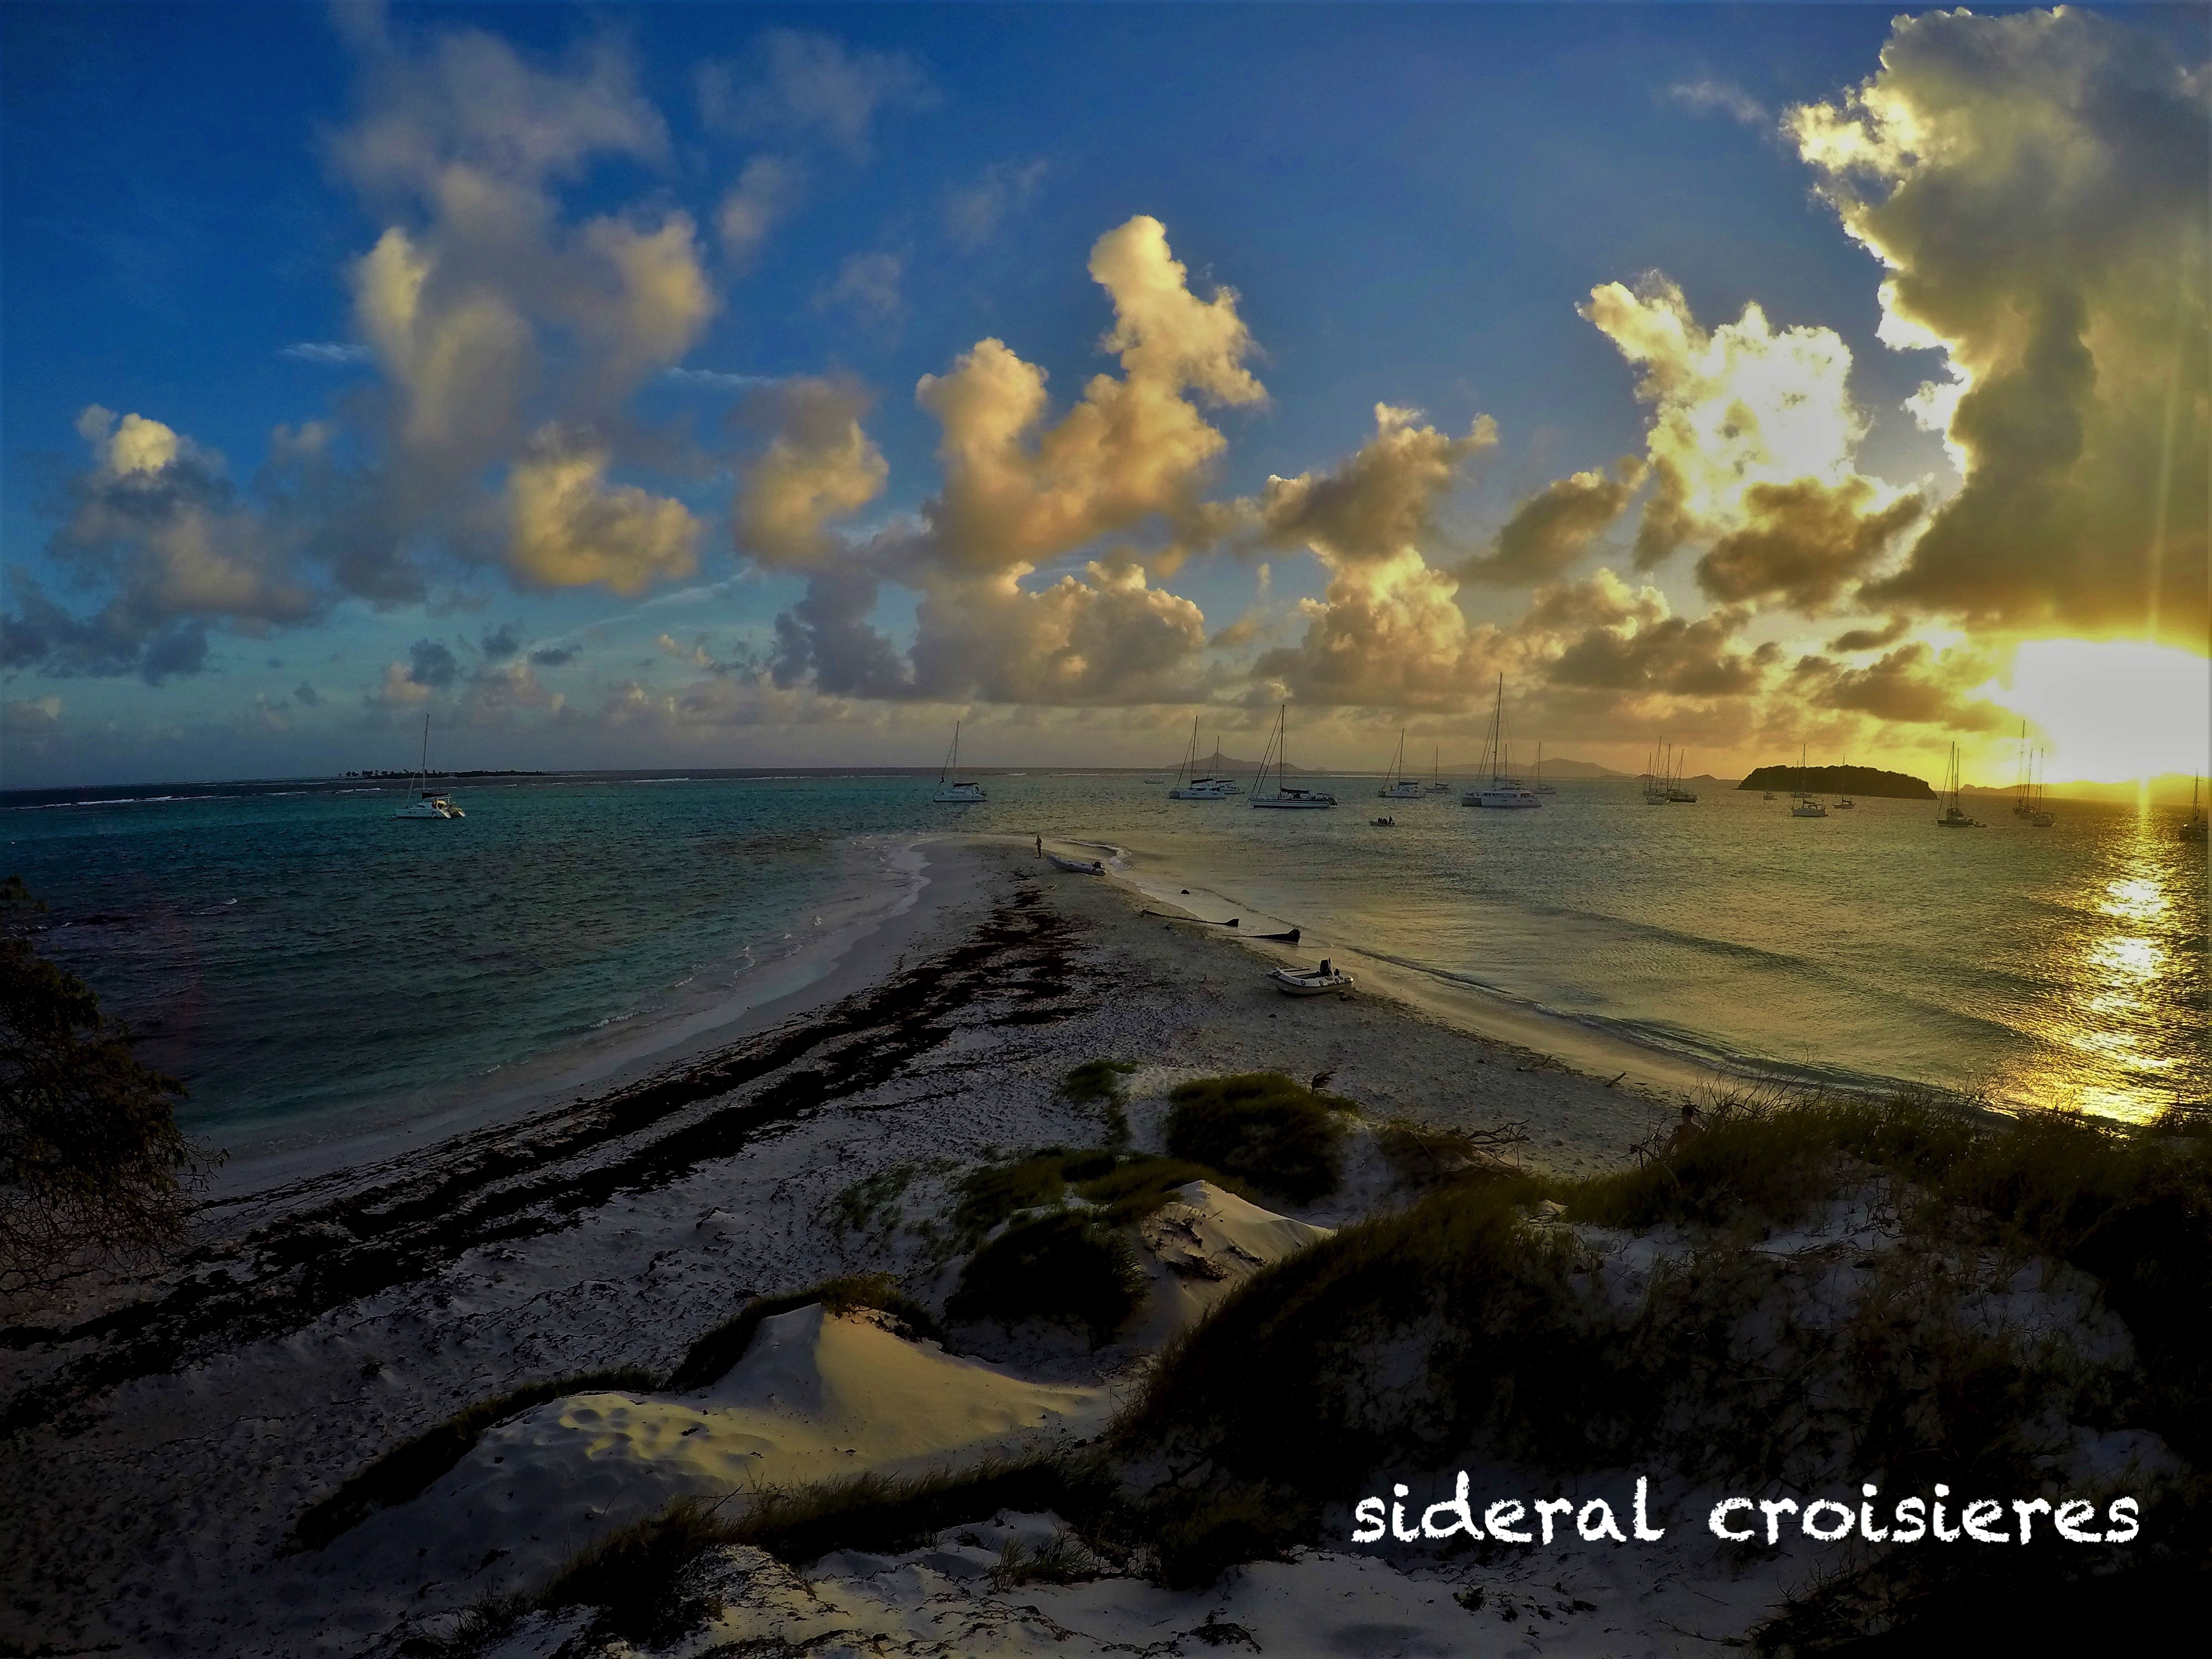 Grenadines, sideral croisieres